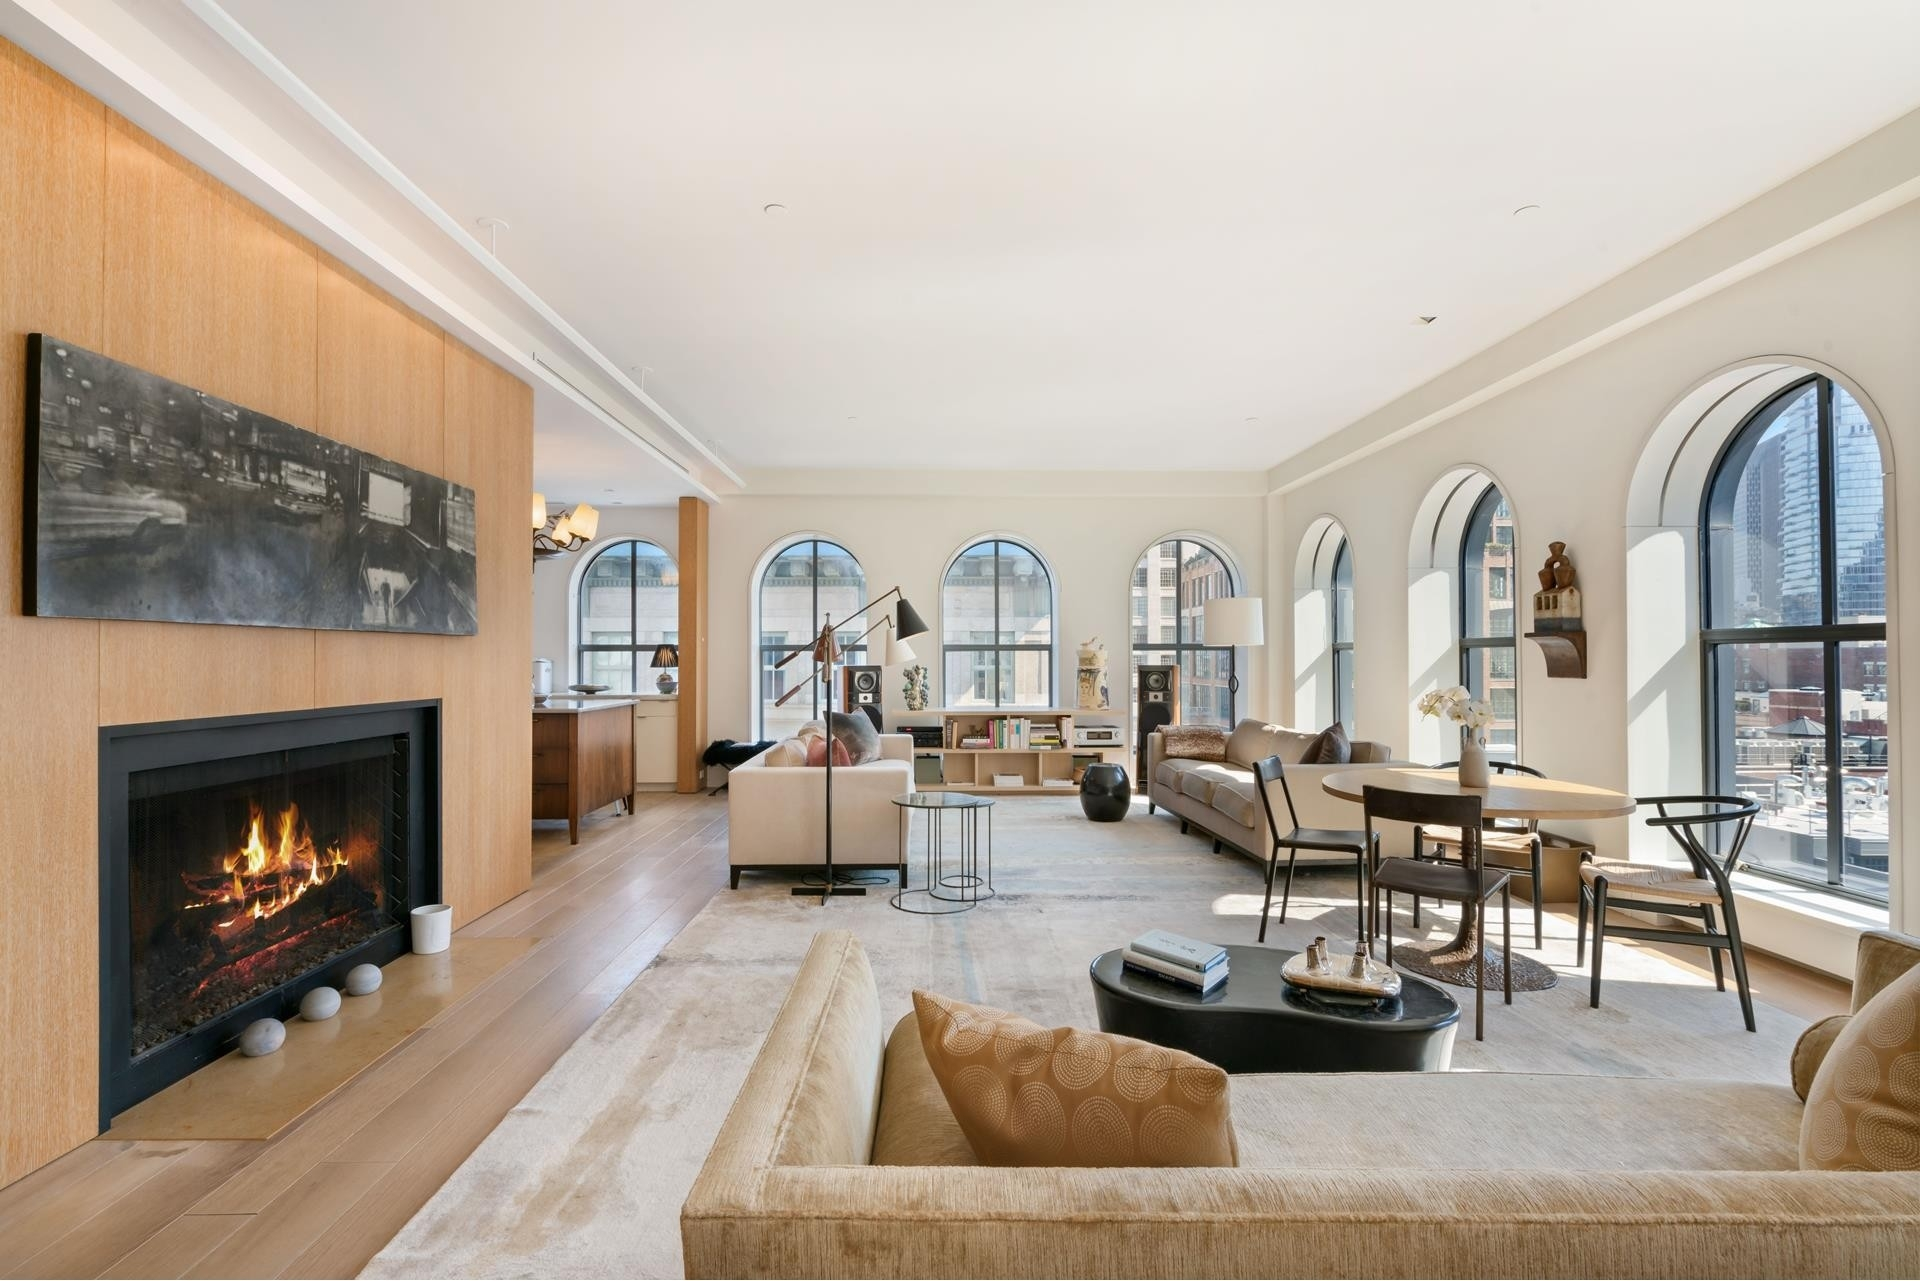 Condominium for Sale at 408 GREENWICH ST , PH TriBeCa, New York, NY 10013